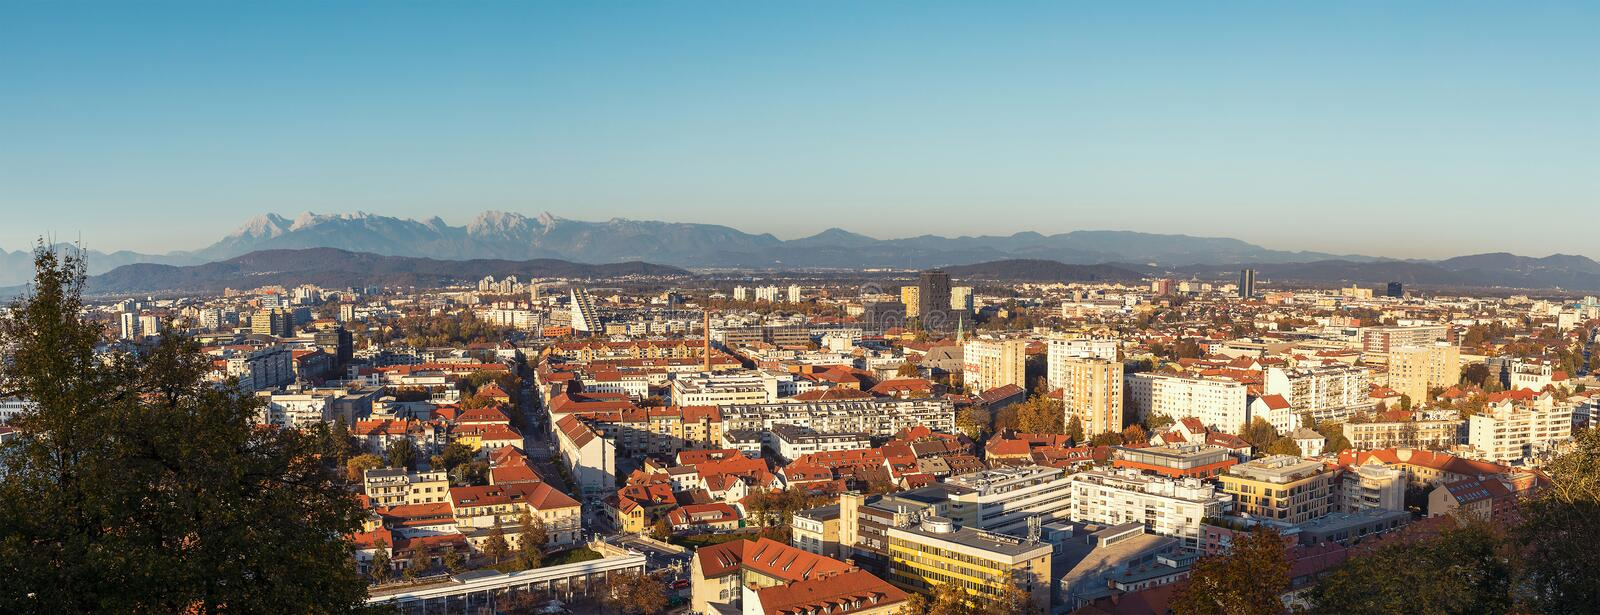 Ljubljana city panorama image taken from the castle. On the hill, Slovenia royalty free stock photography